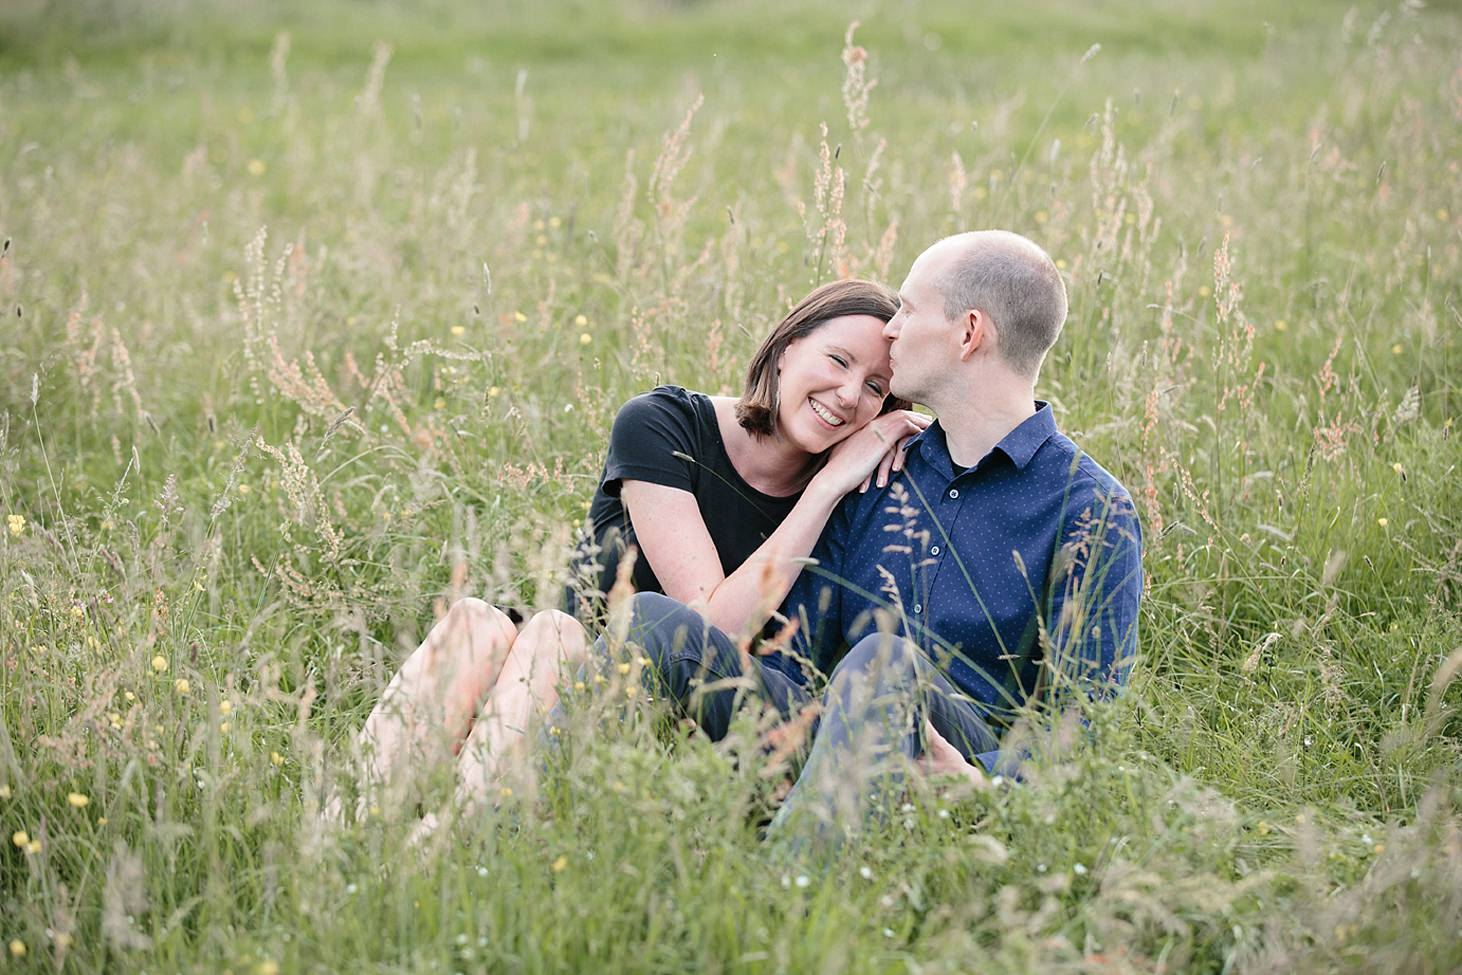 trent park engagement shoot couple in the grass